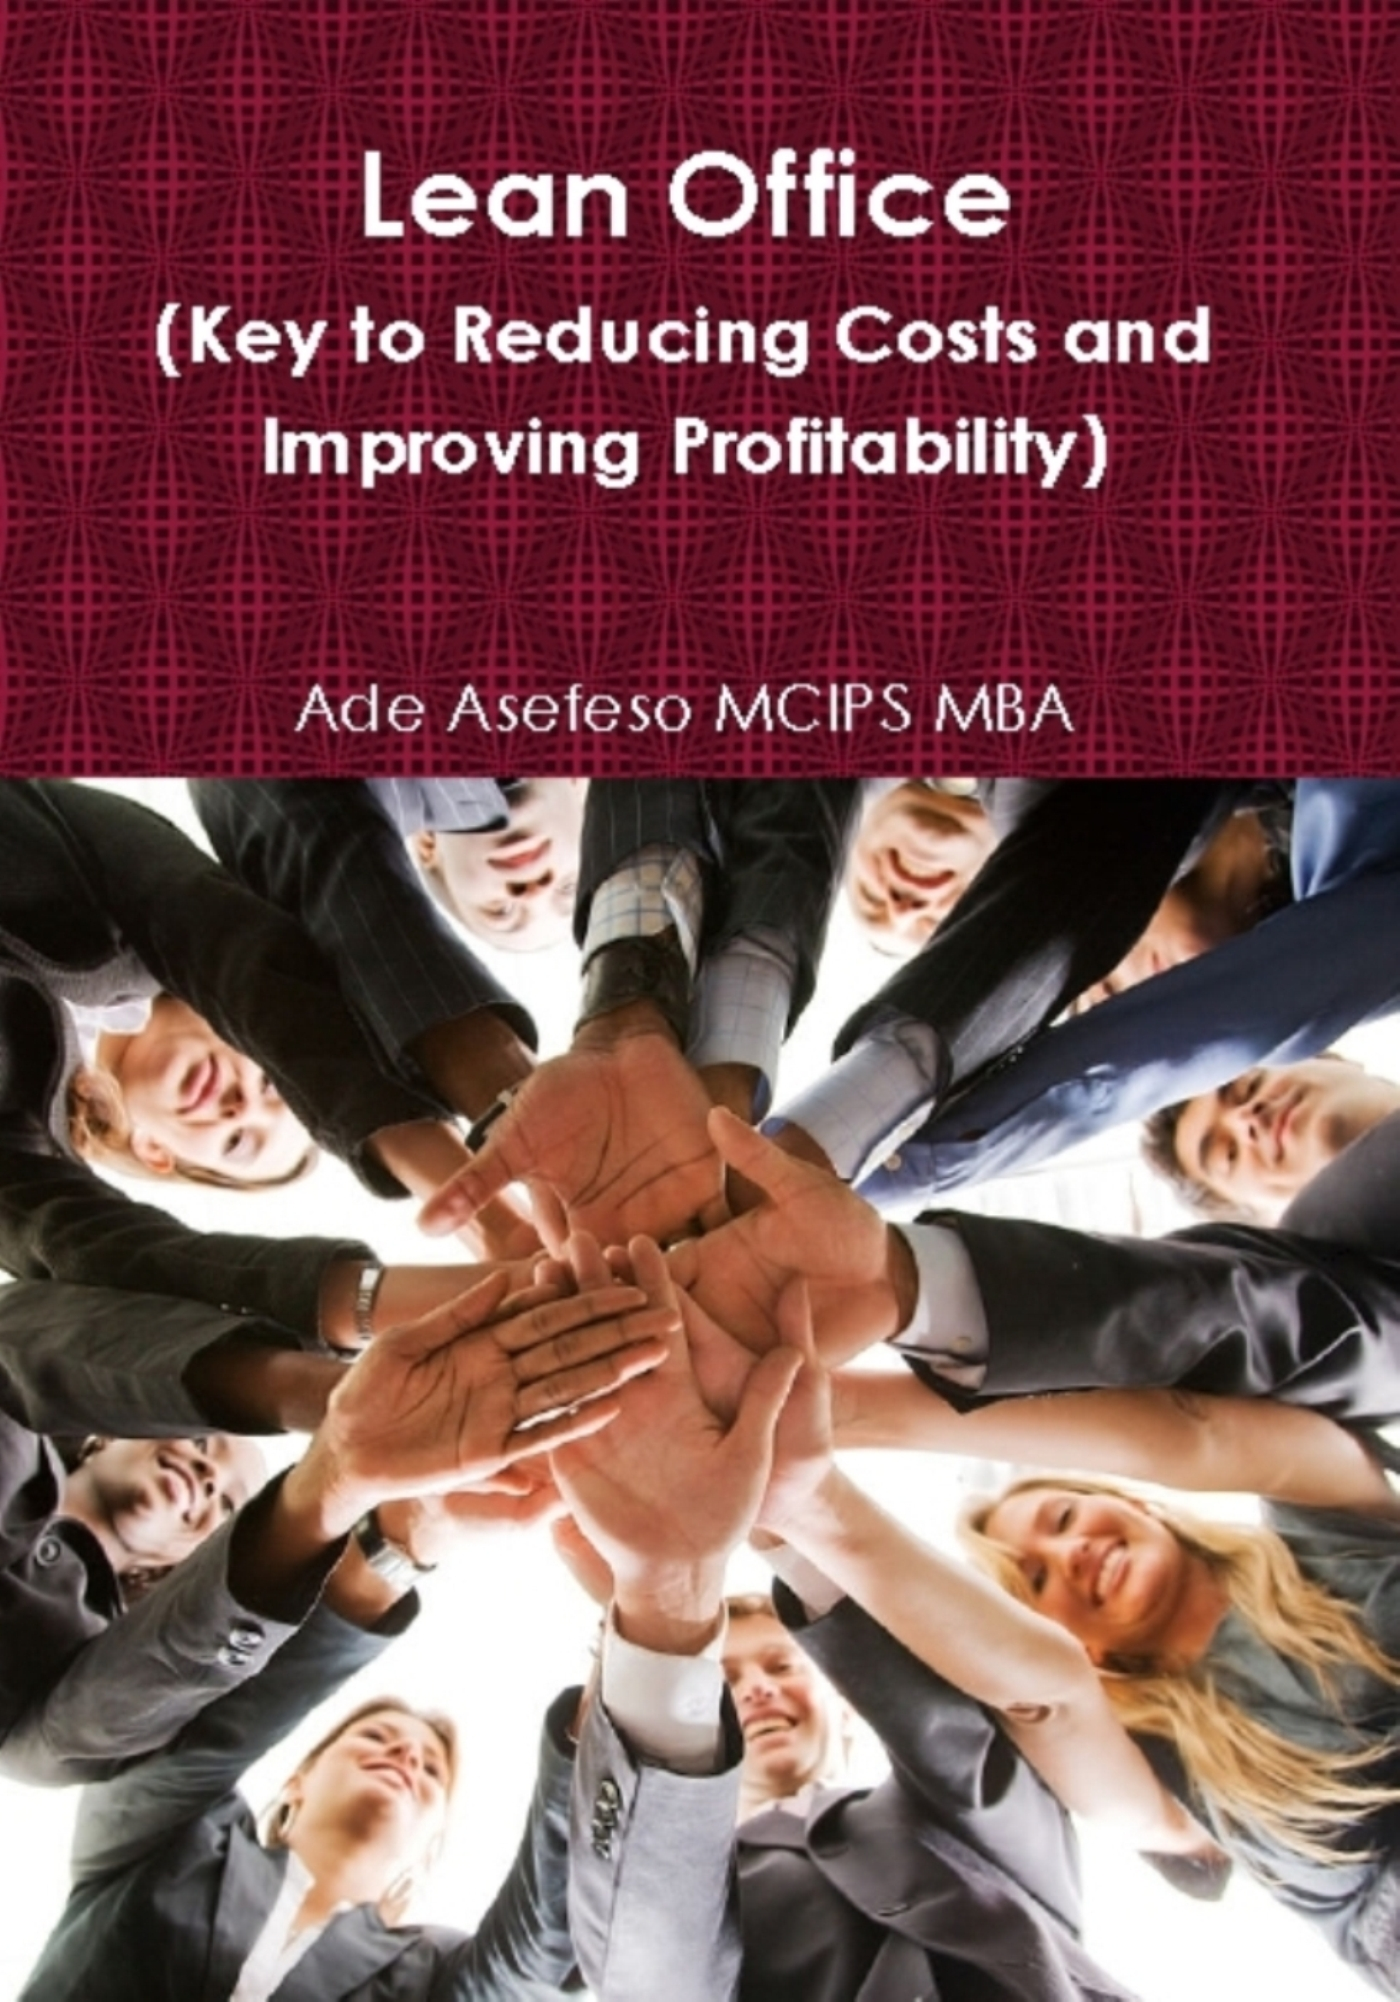 Ade Asefeso MCIPS MBA - Lean Office (Key to Reducing Costs and Improving Profitability)